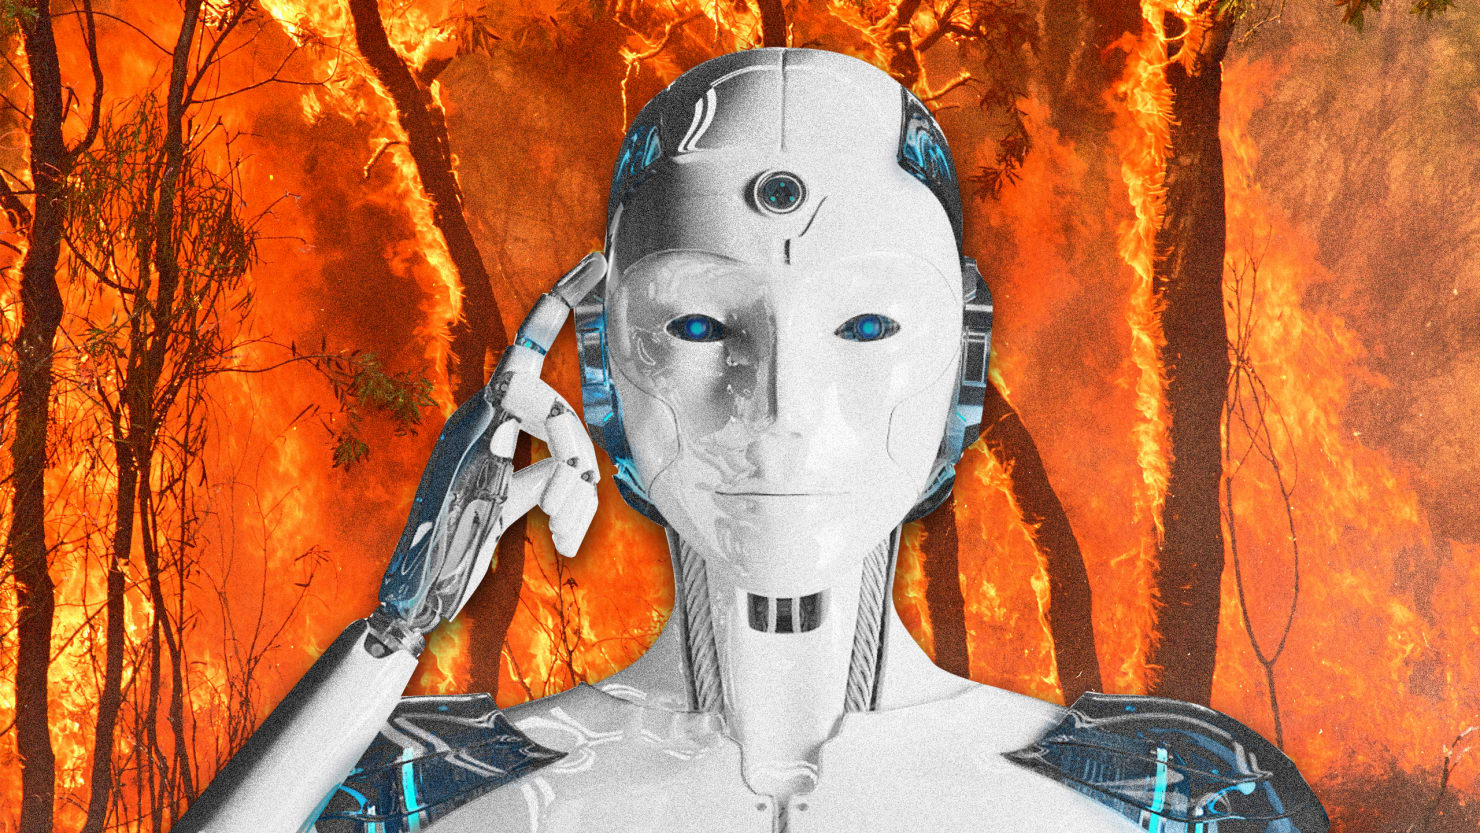 image of white robot with blue eyes with index finger pointed to head and background of california wildfires forest in full blaze